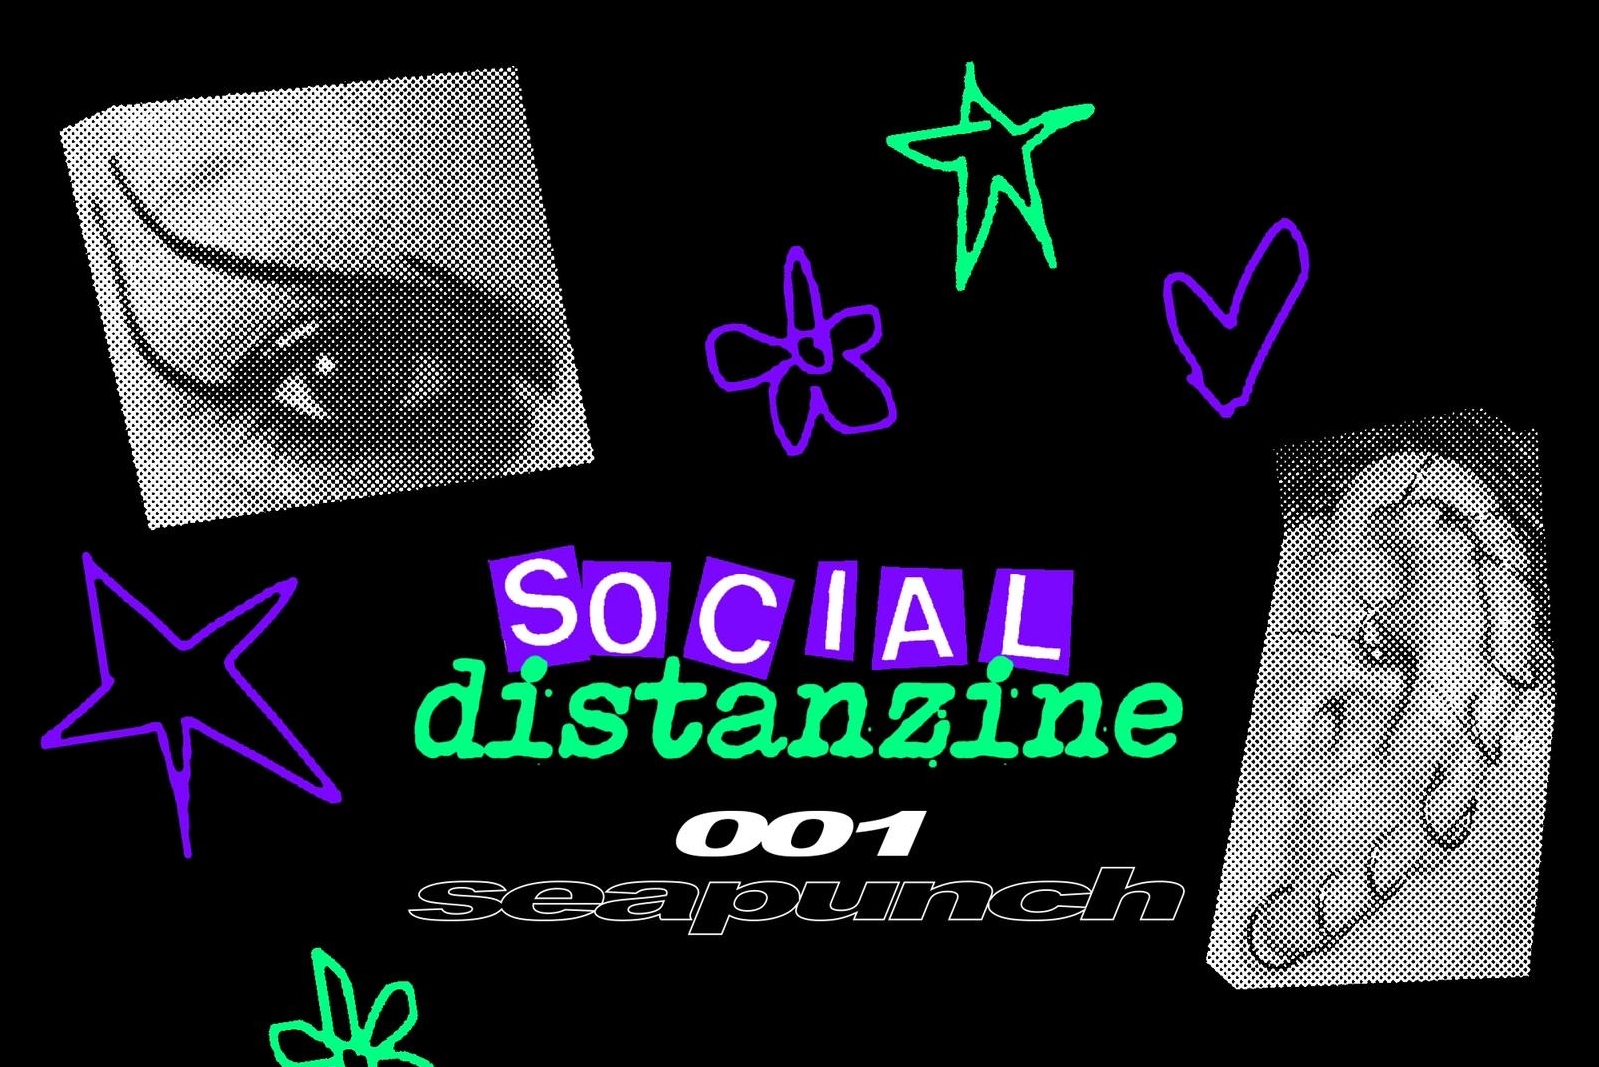 Social Distanzine 001 - Seapunch